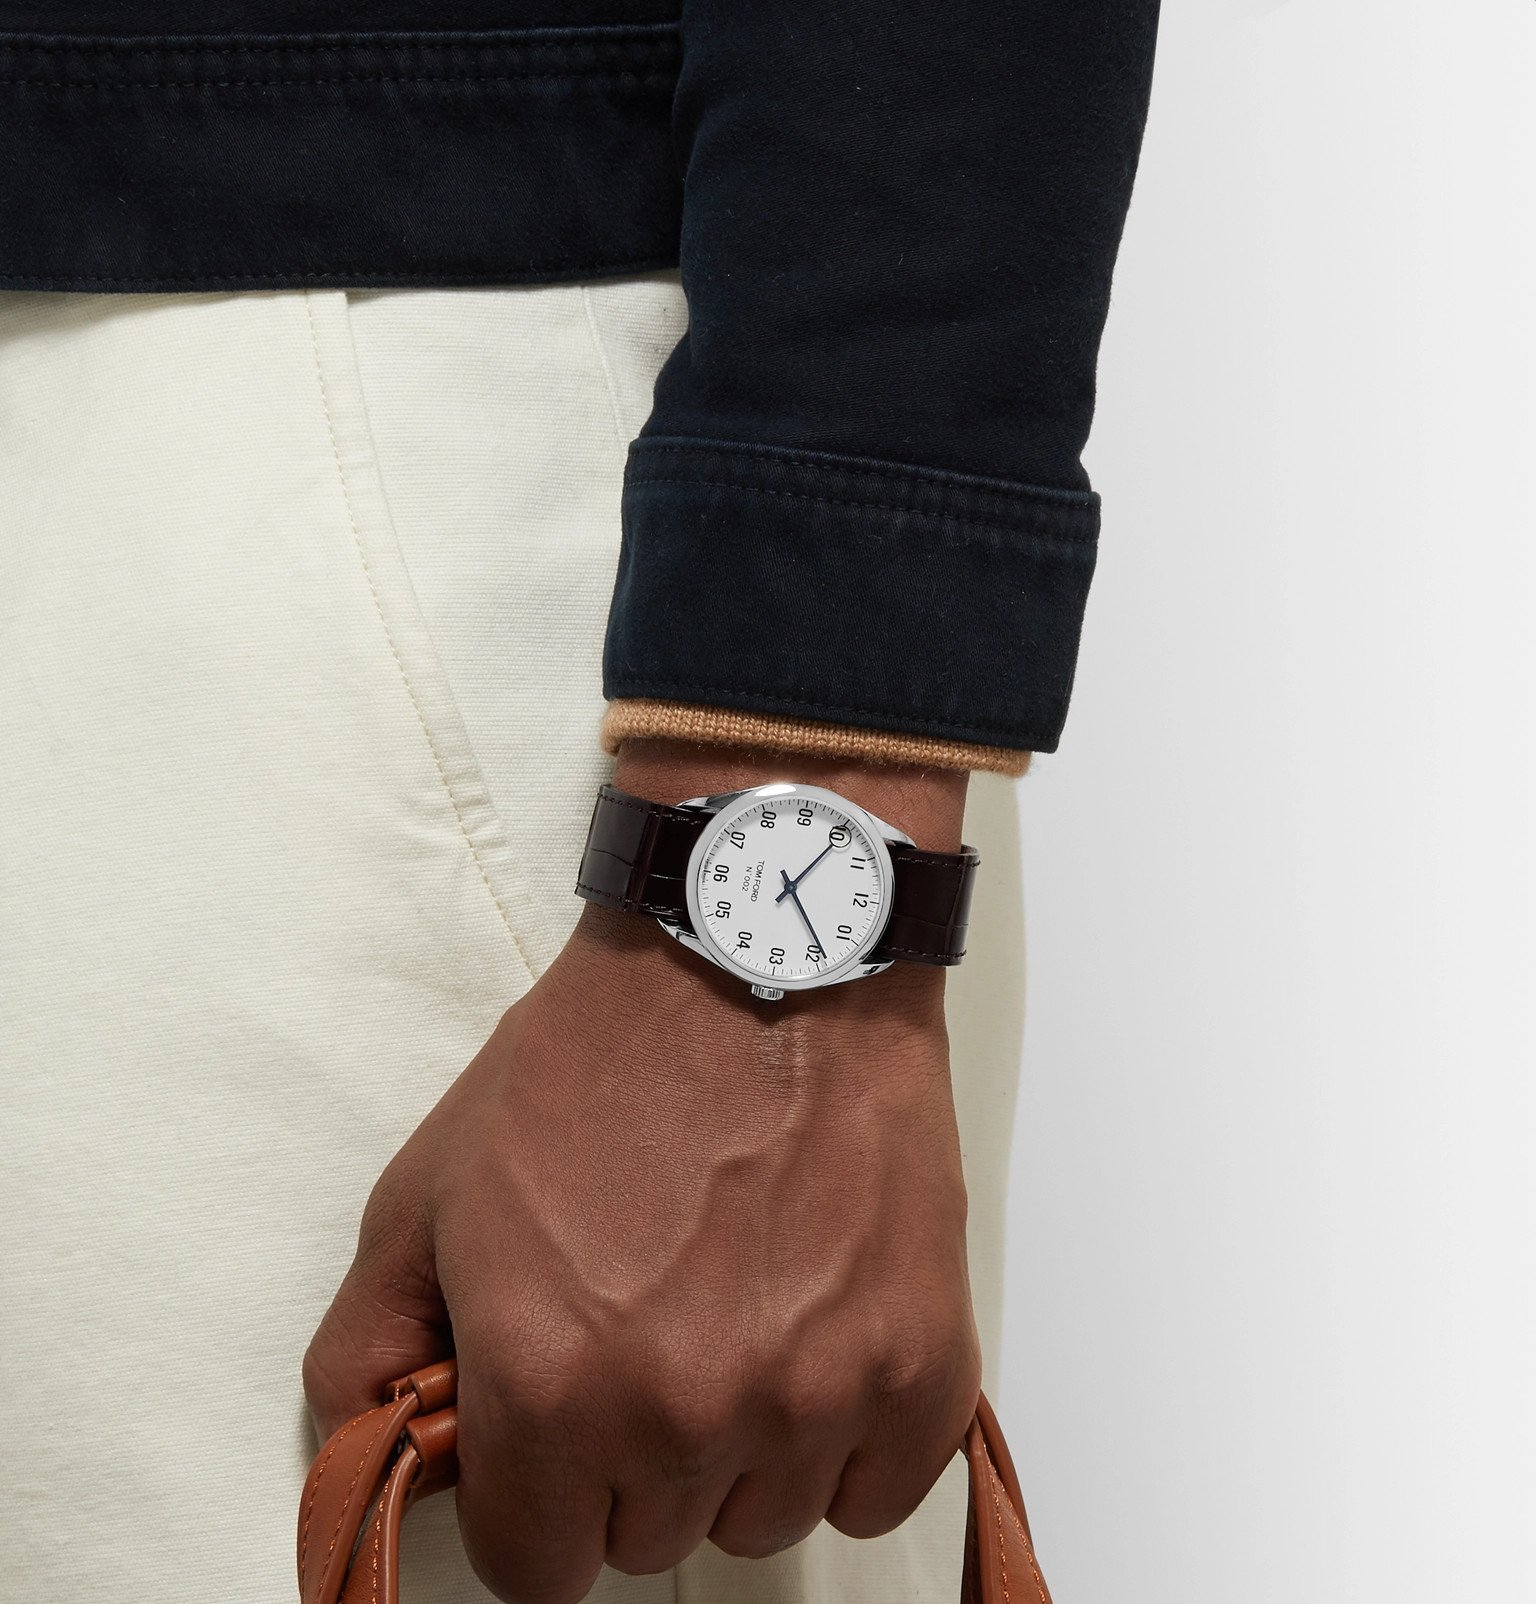 Tom Ford Timepieces - 002 38mm Stainless Steel and Alligator Watch - White